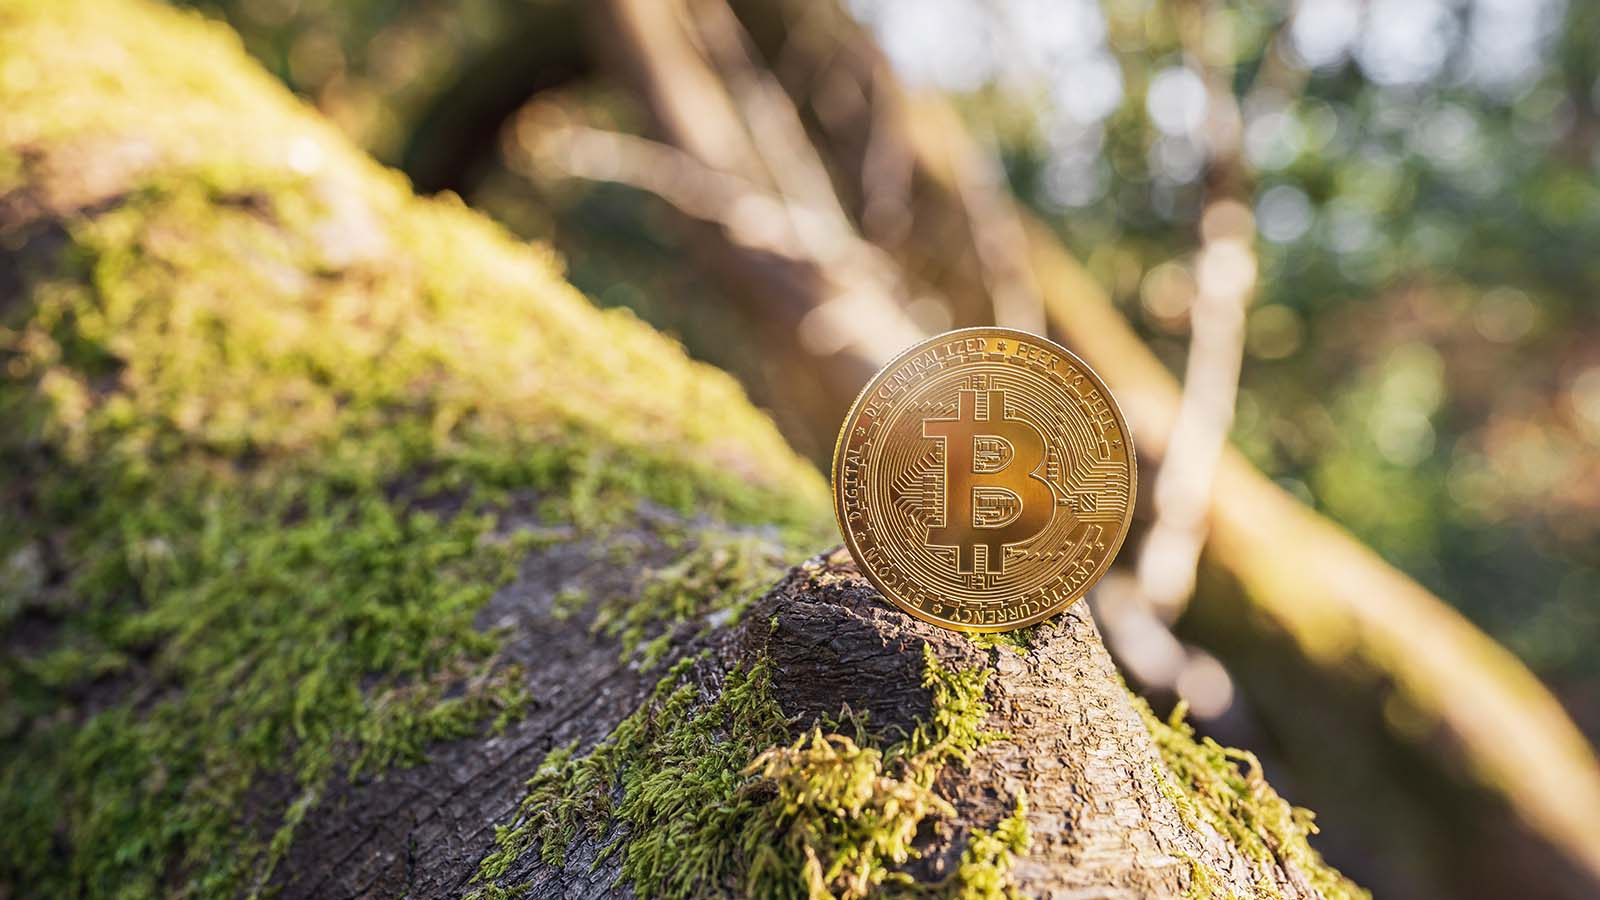 Green Coins: 5 of the Most Eco-Friendly Cryptos Elon Musk Should Consider Now